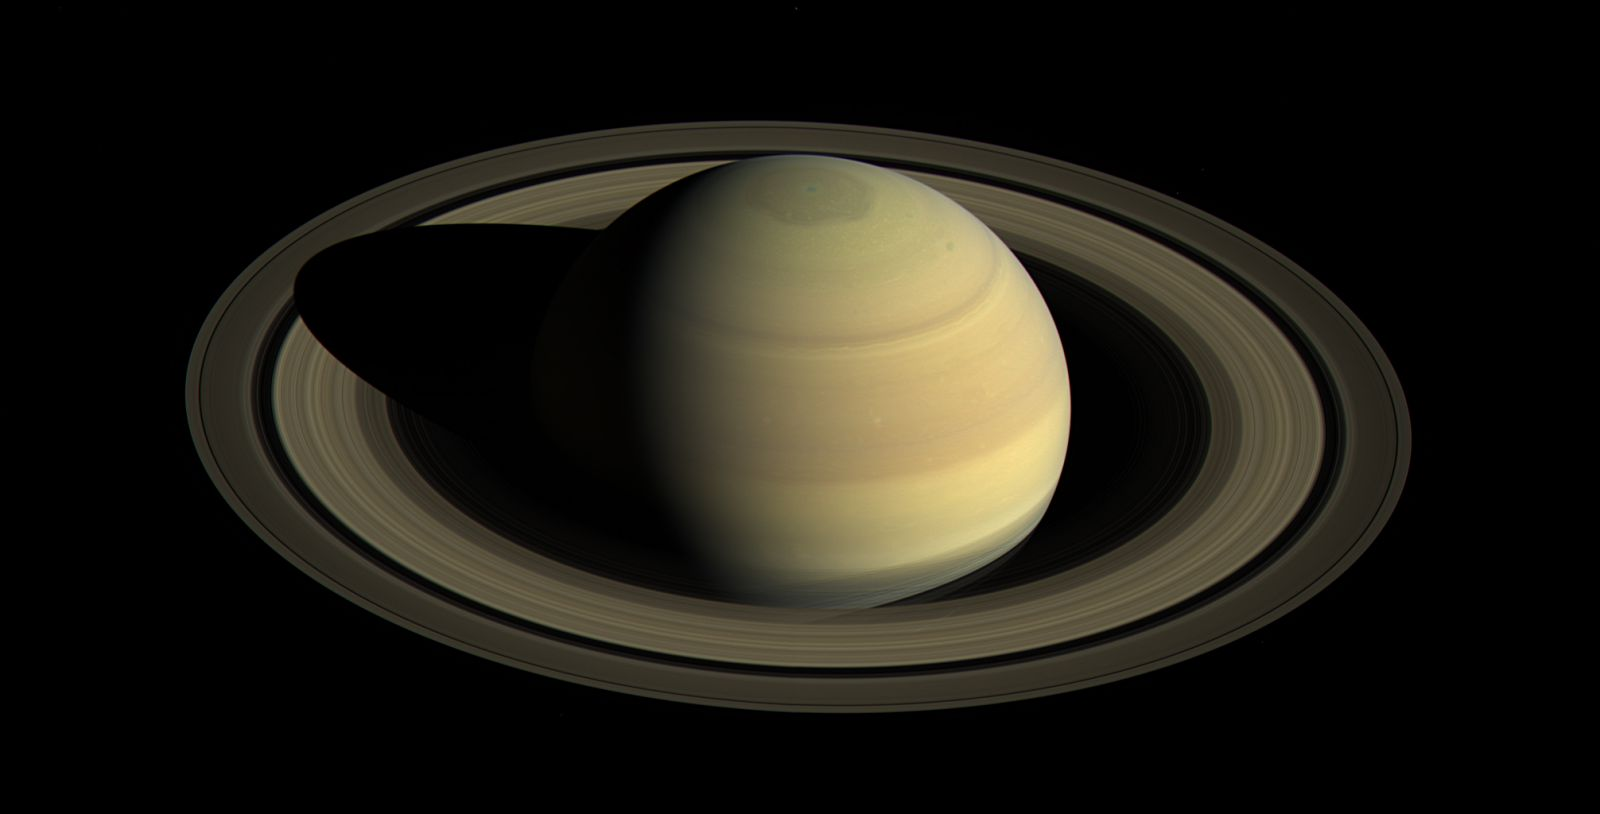 Cassini image of Saturn in 2016